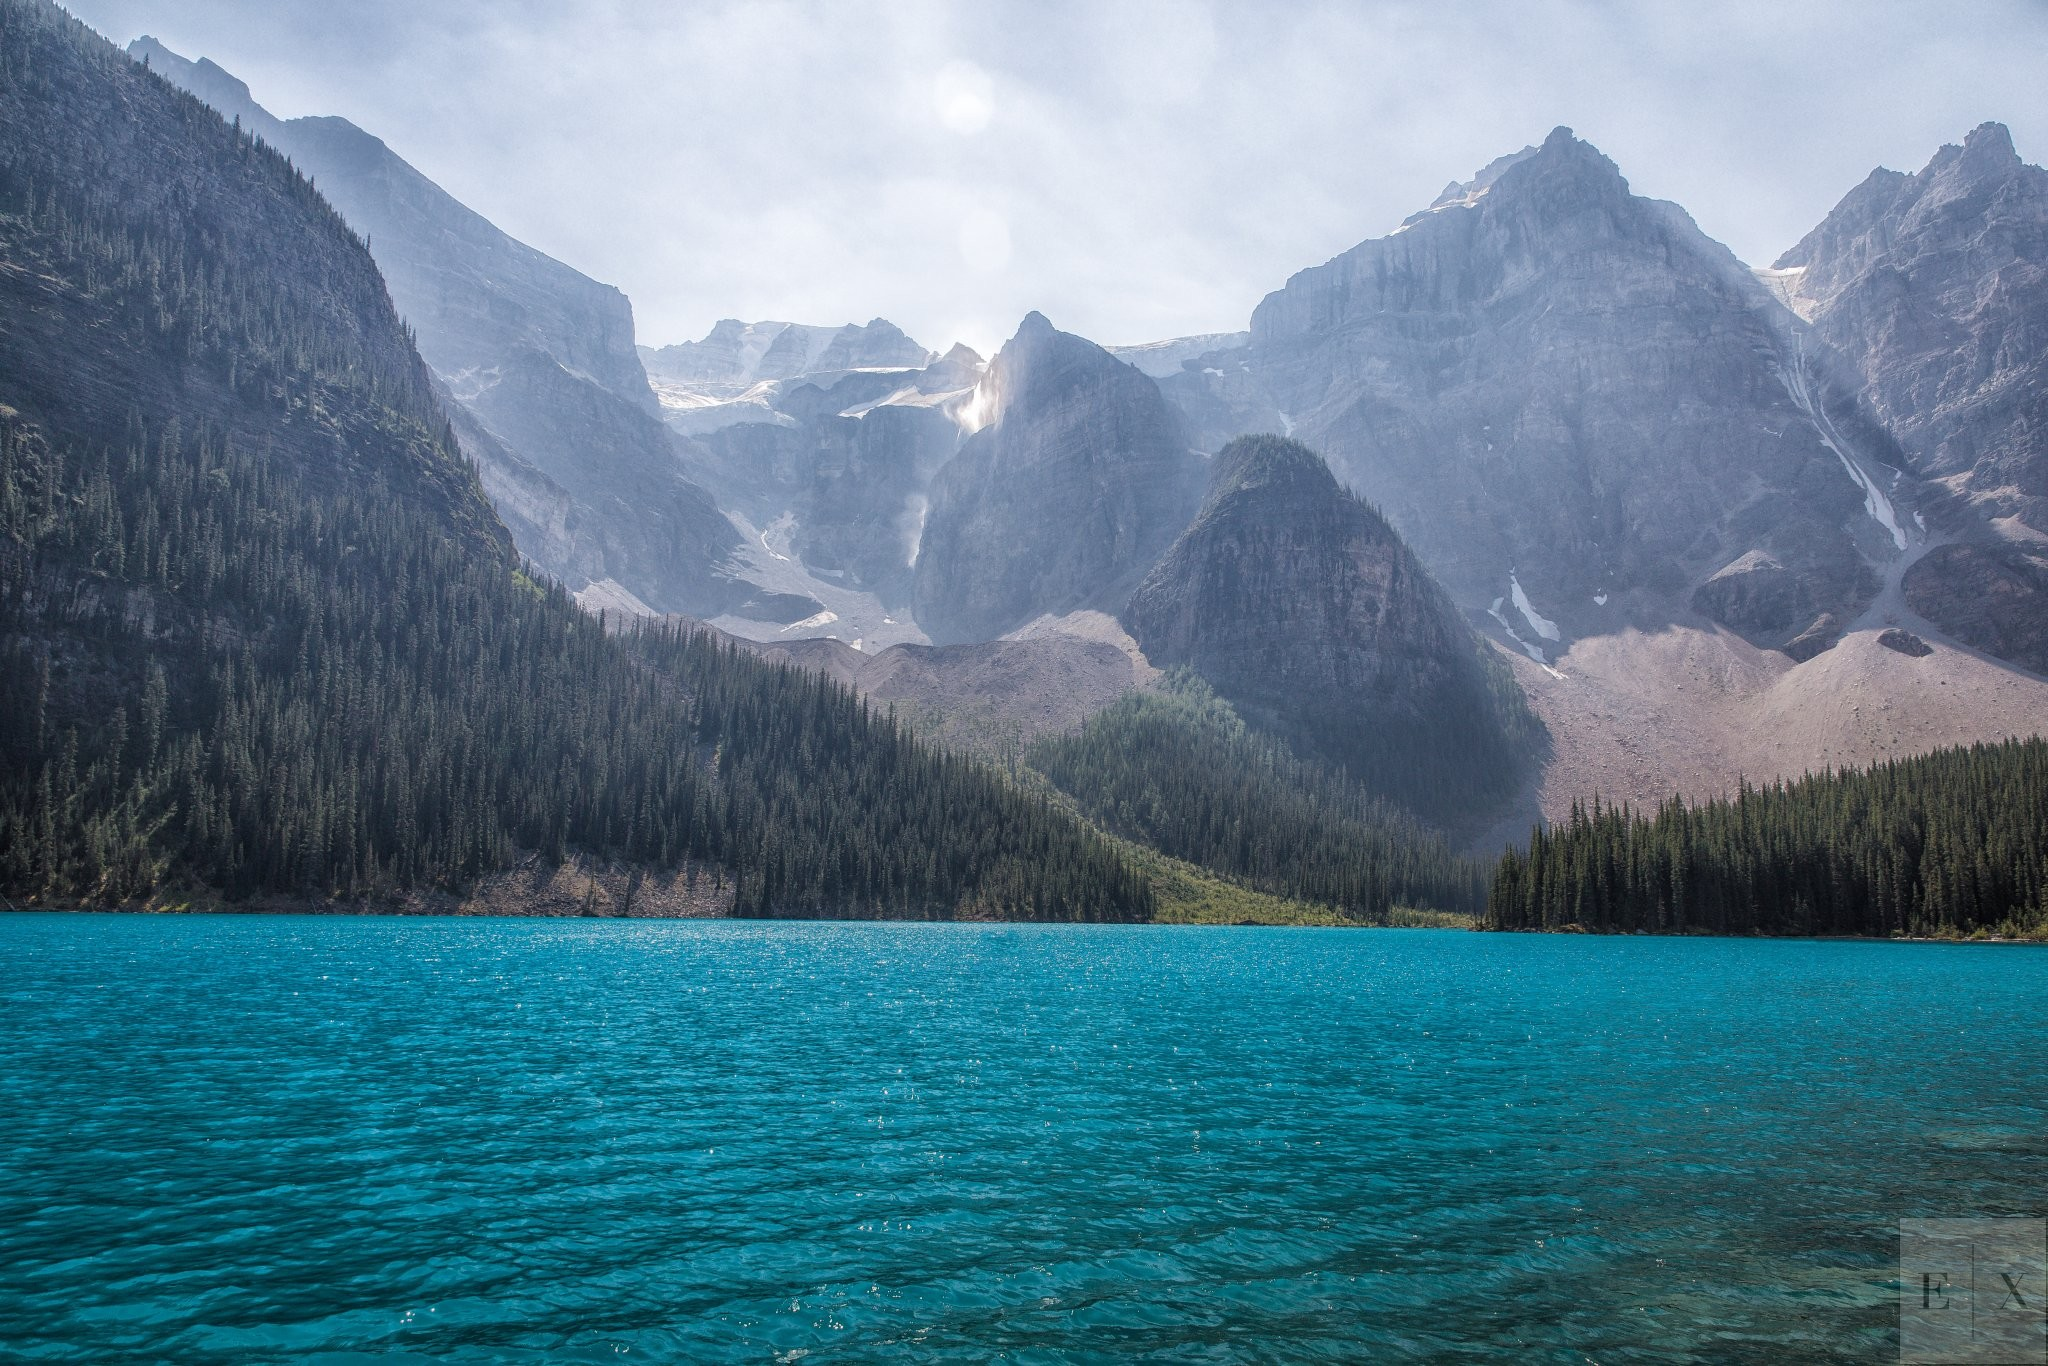 Lake Moraine | Elegant Exposures Photography